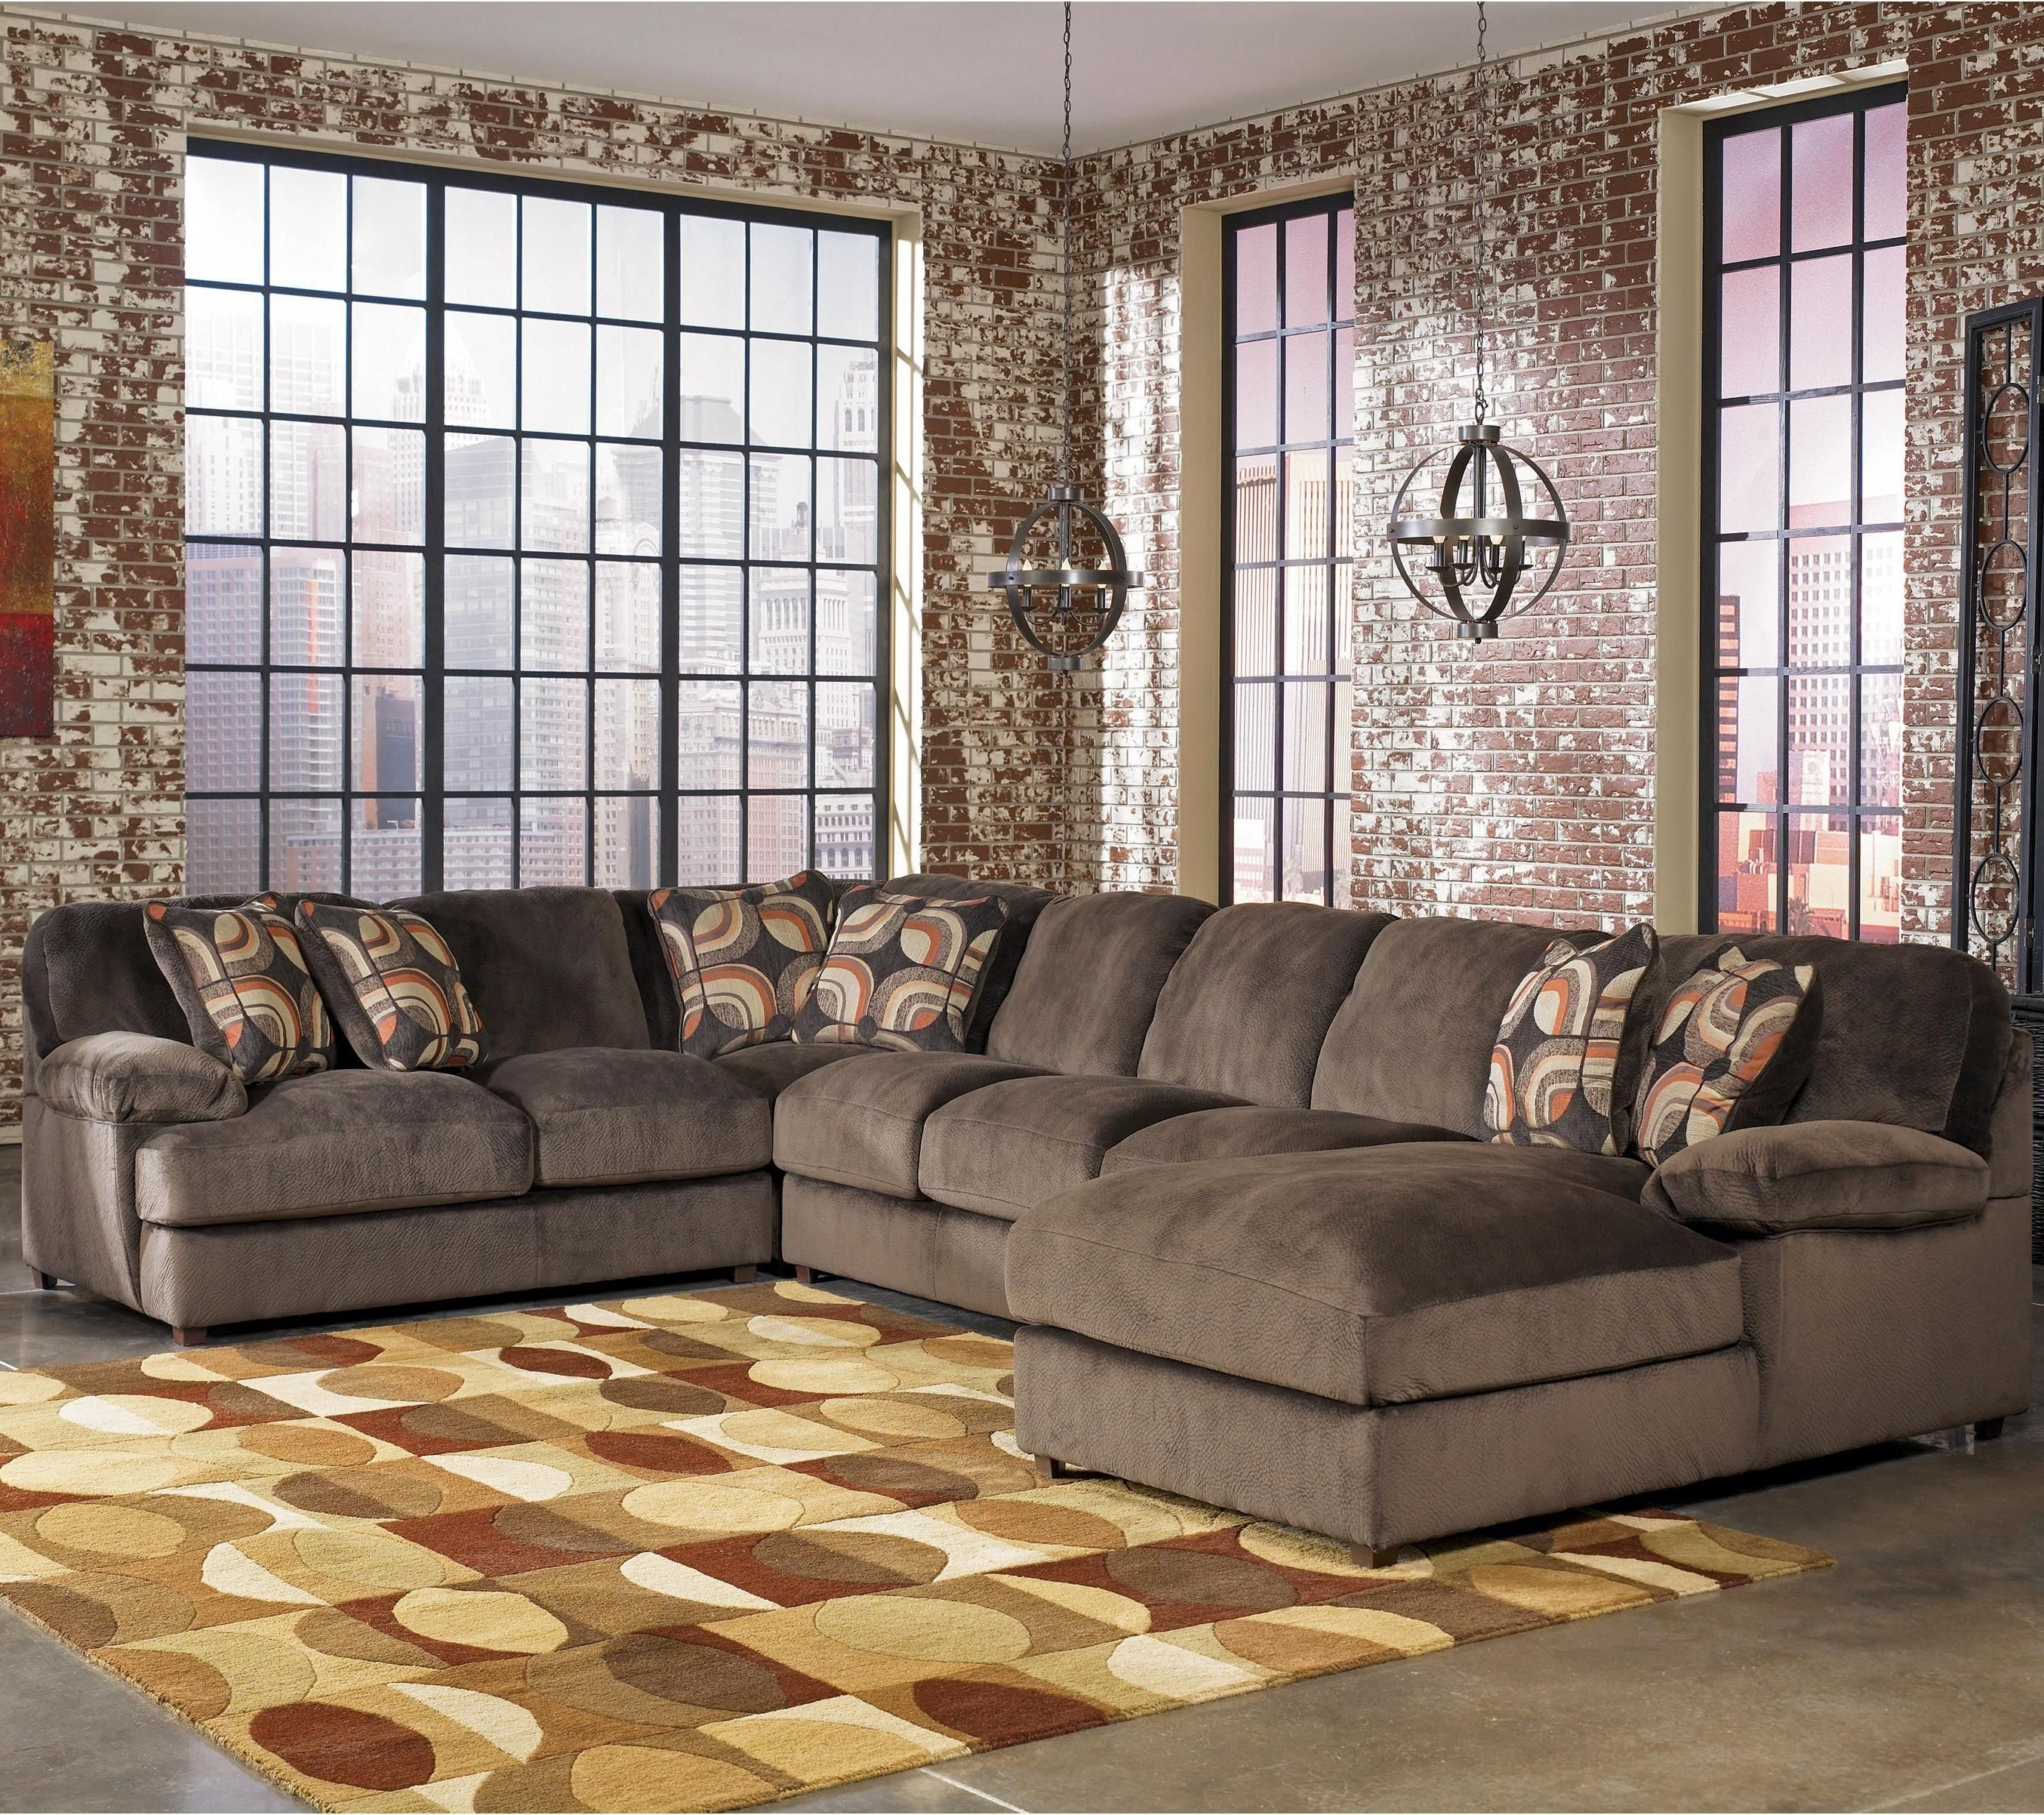 Flood Moultrie With Sam Levitz Sectional Sofas (View 9 of 20)